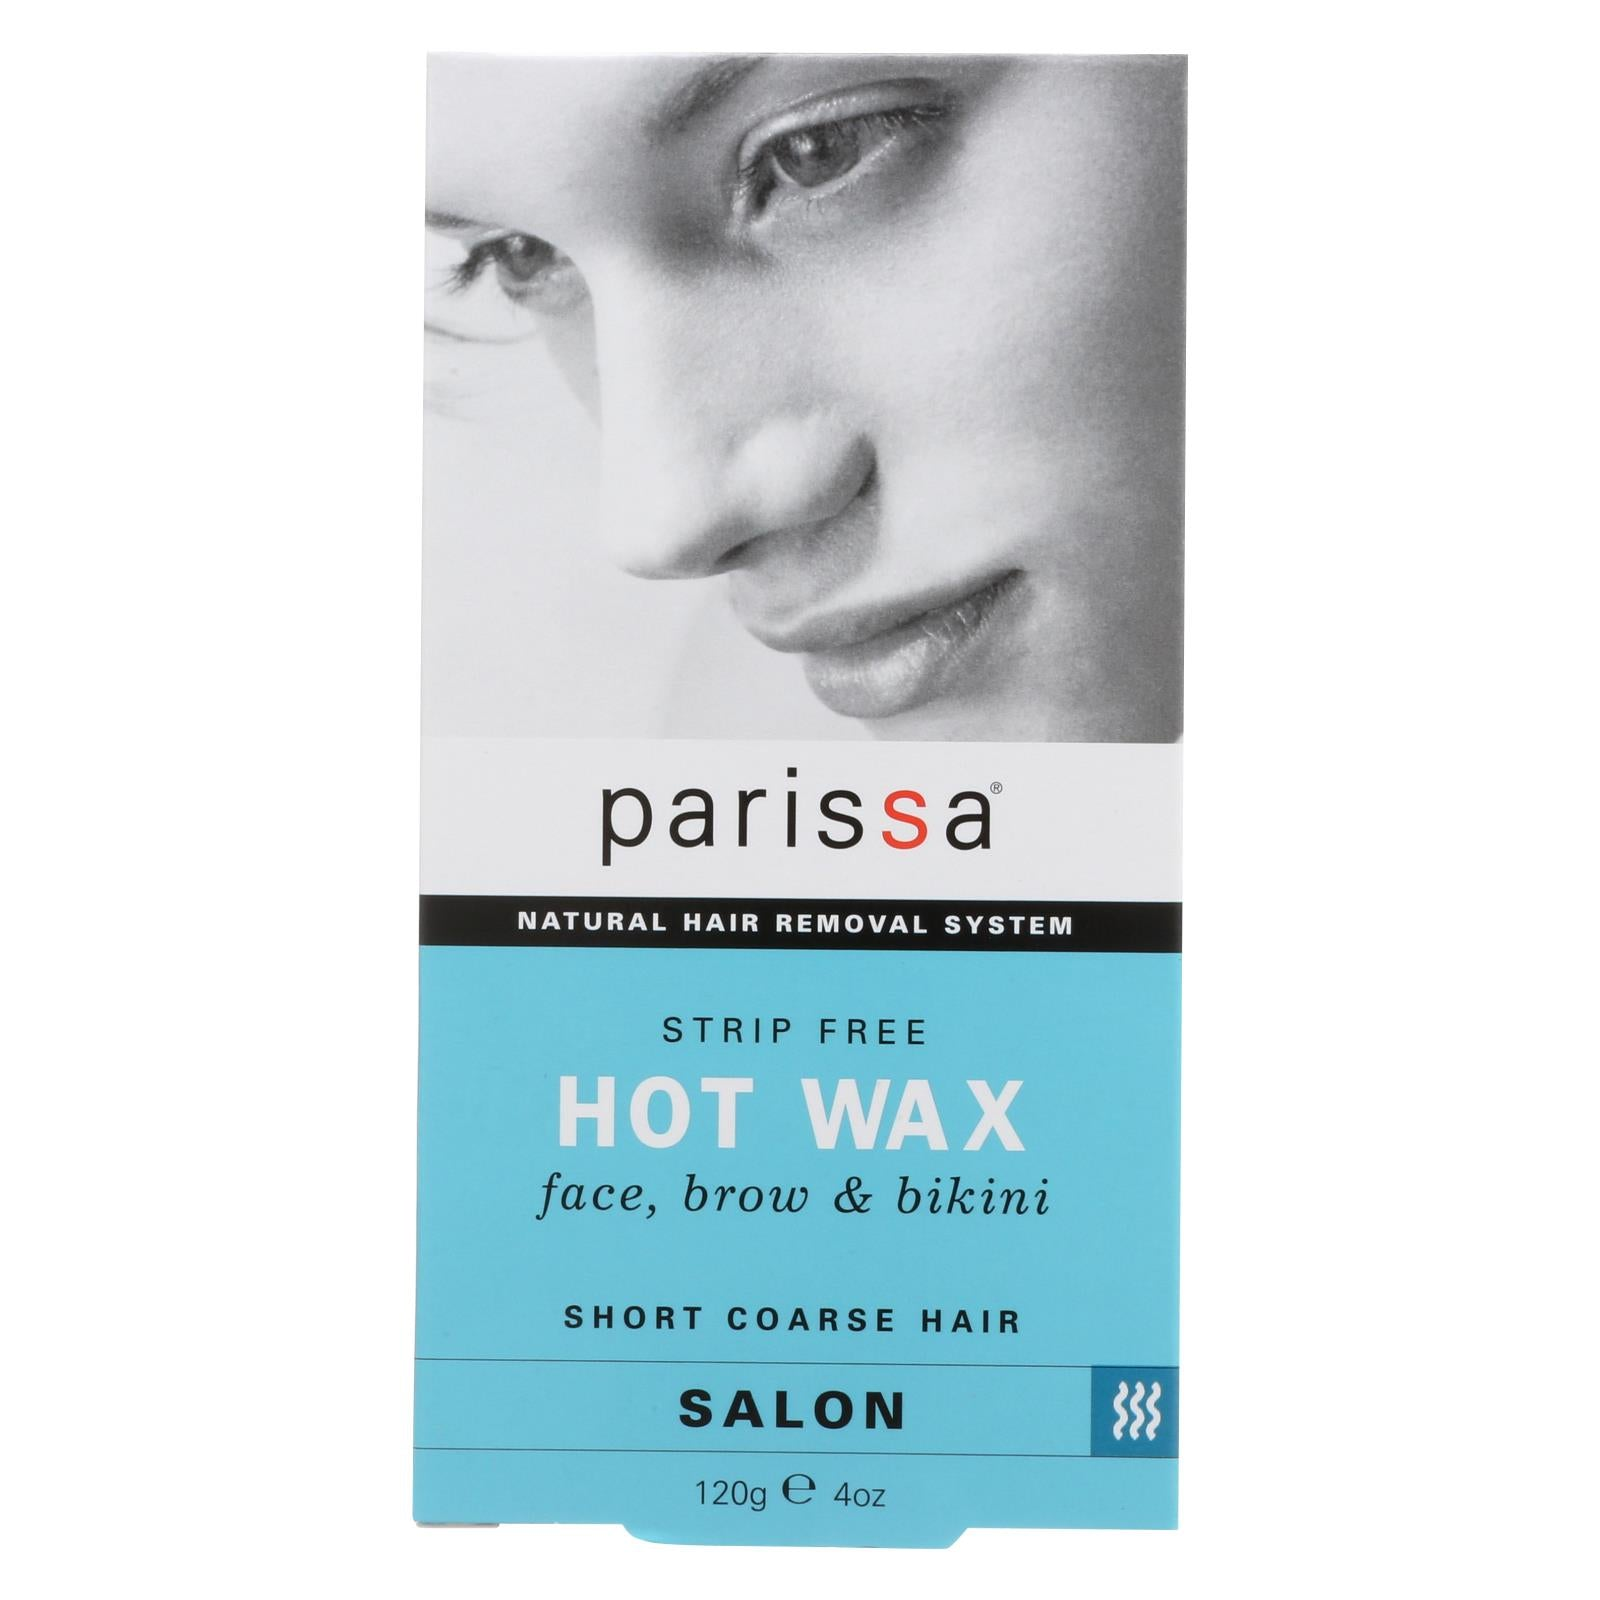 Parissa Natural Hair Removal System Hot Wax - 4 Oz HG0521872